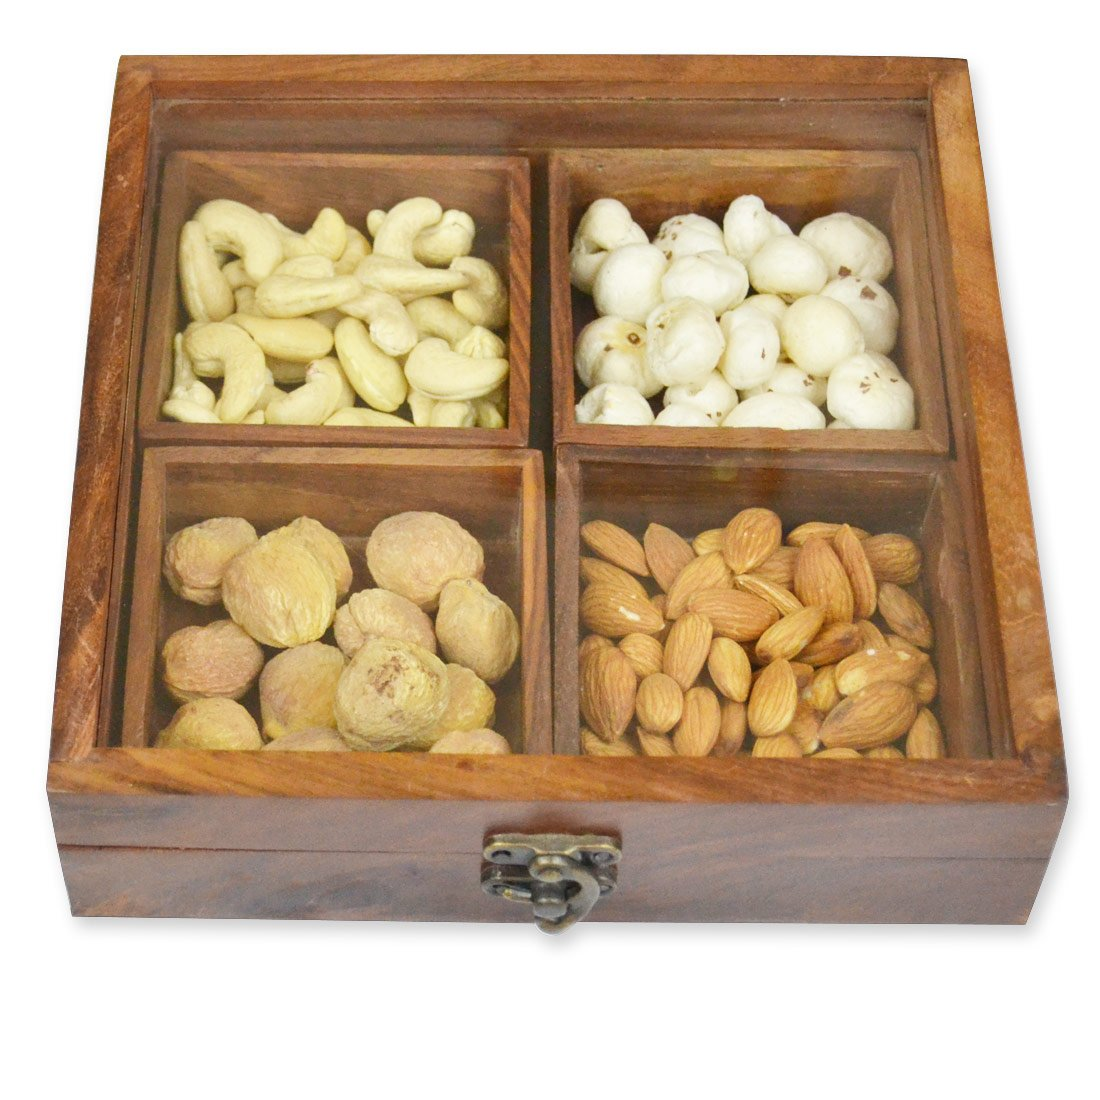 Buy SPECTRAHUT Sheesham Wooden 4 Container Dry Fruit Box With Laxmi Charan Plate Brown 55 Inch Online At Low Prices In India